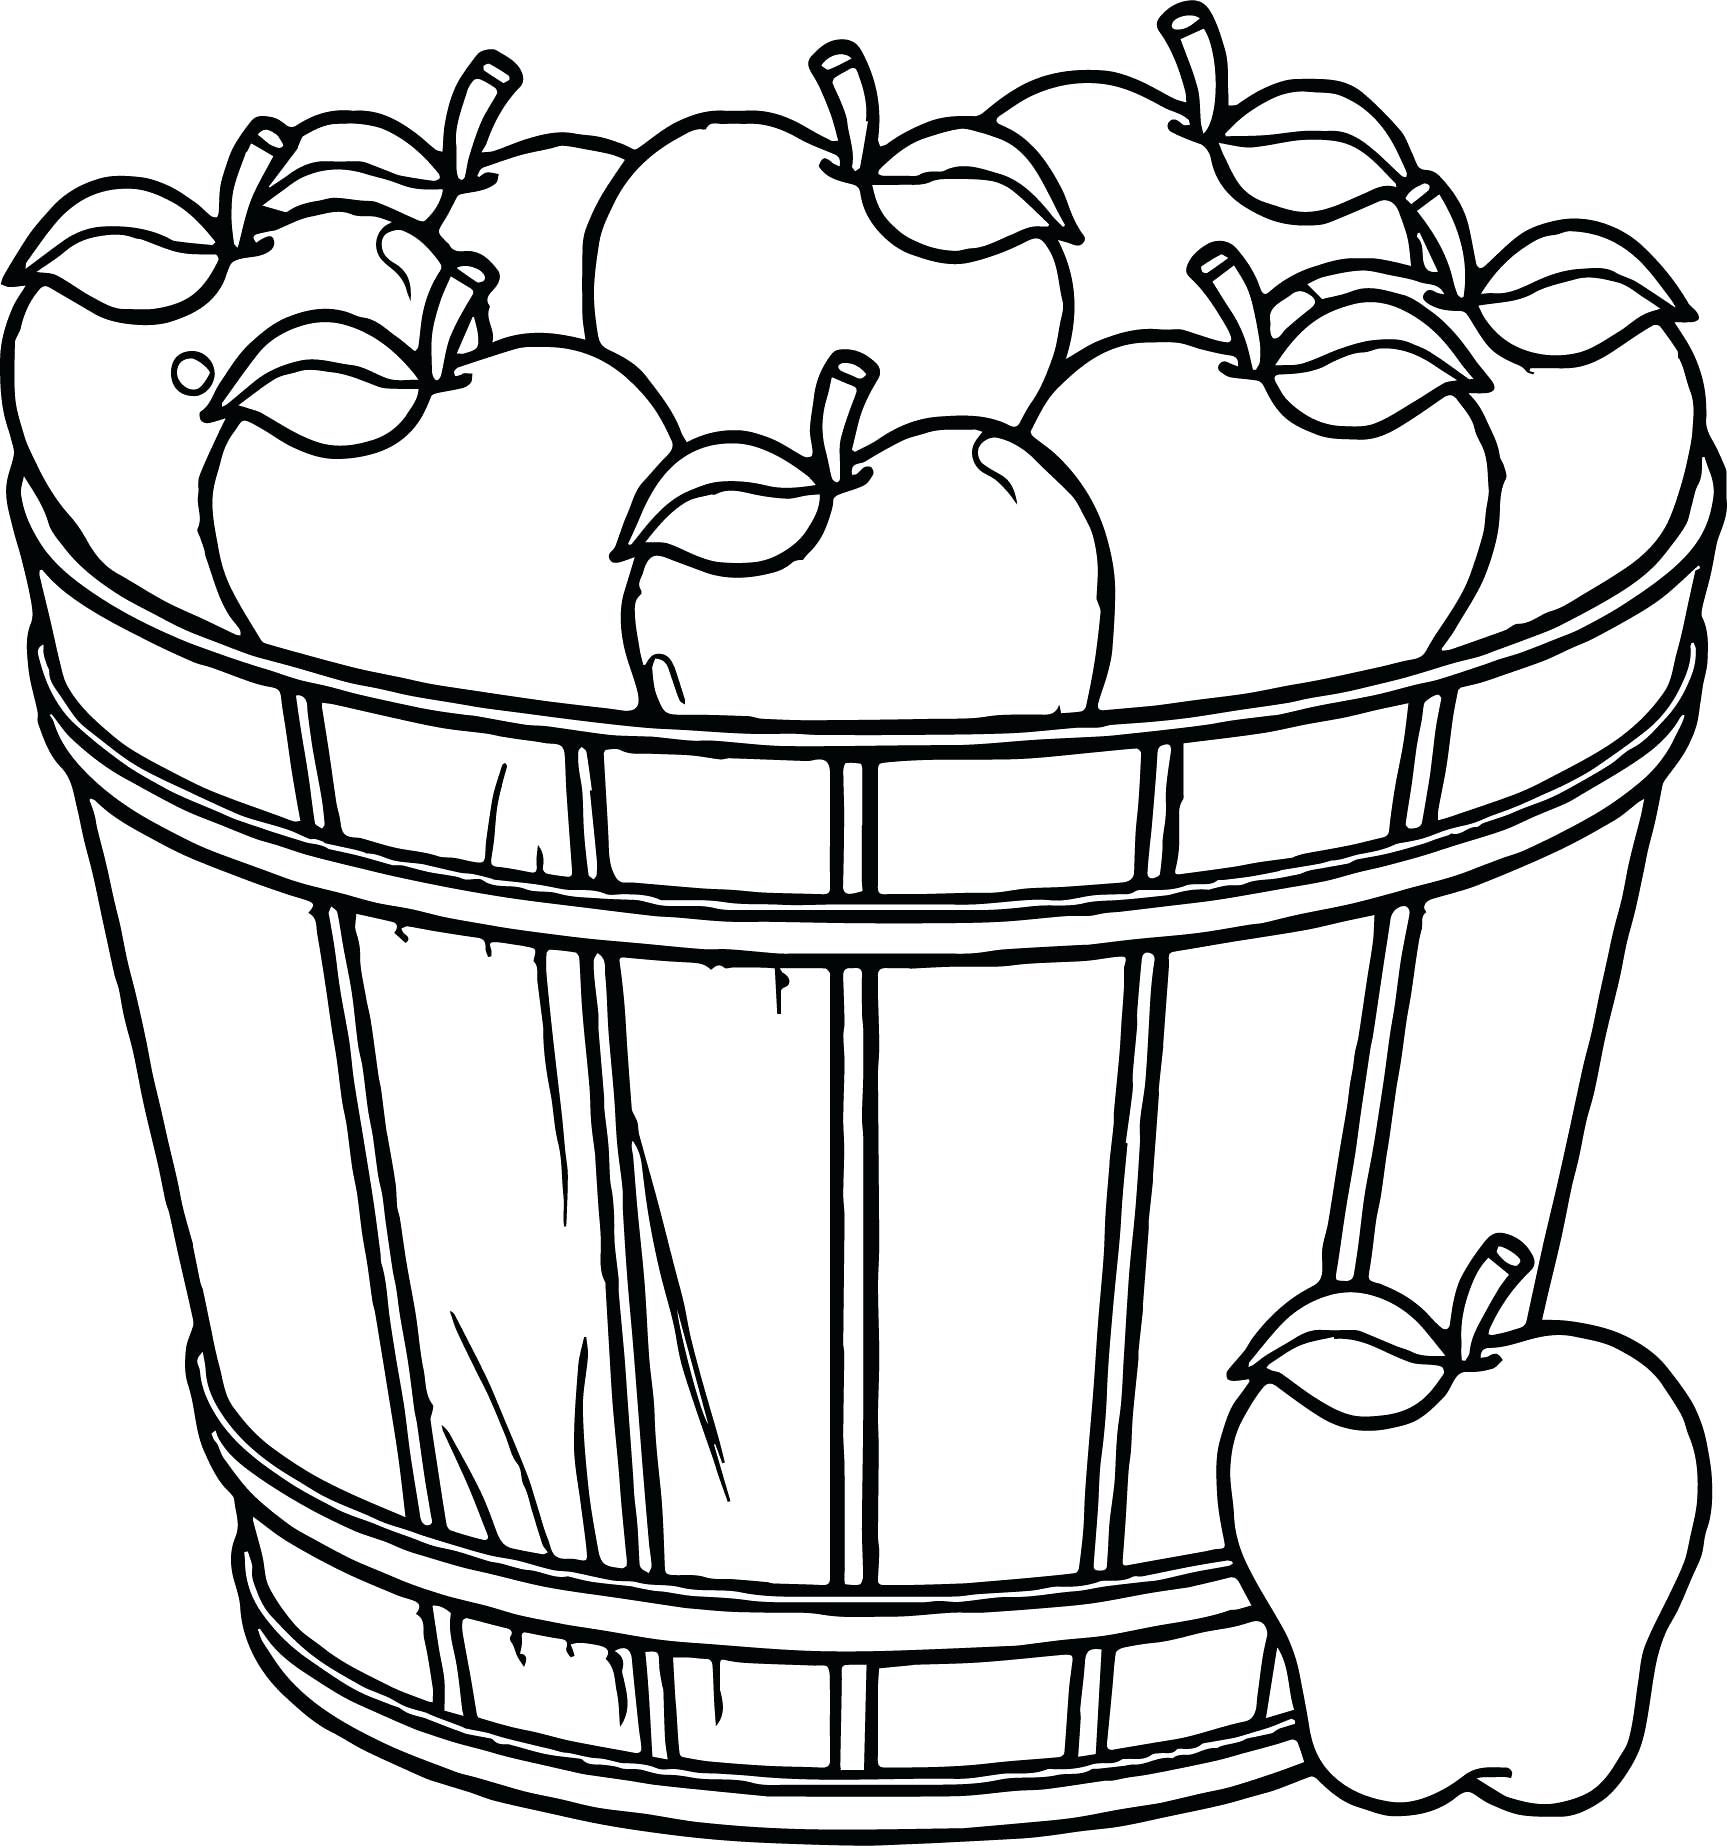 1727x1846 Basket With Apples Coloring